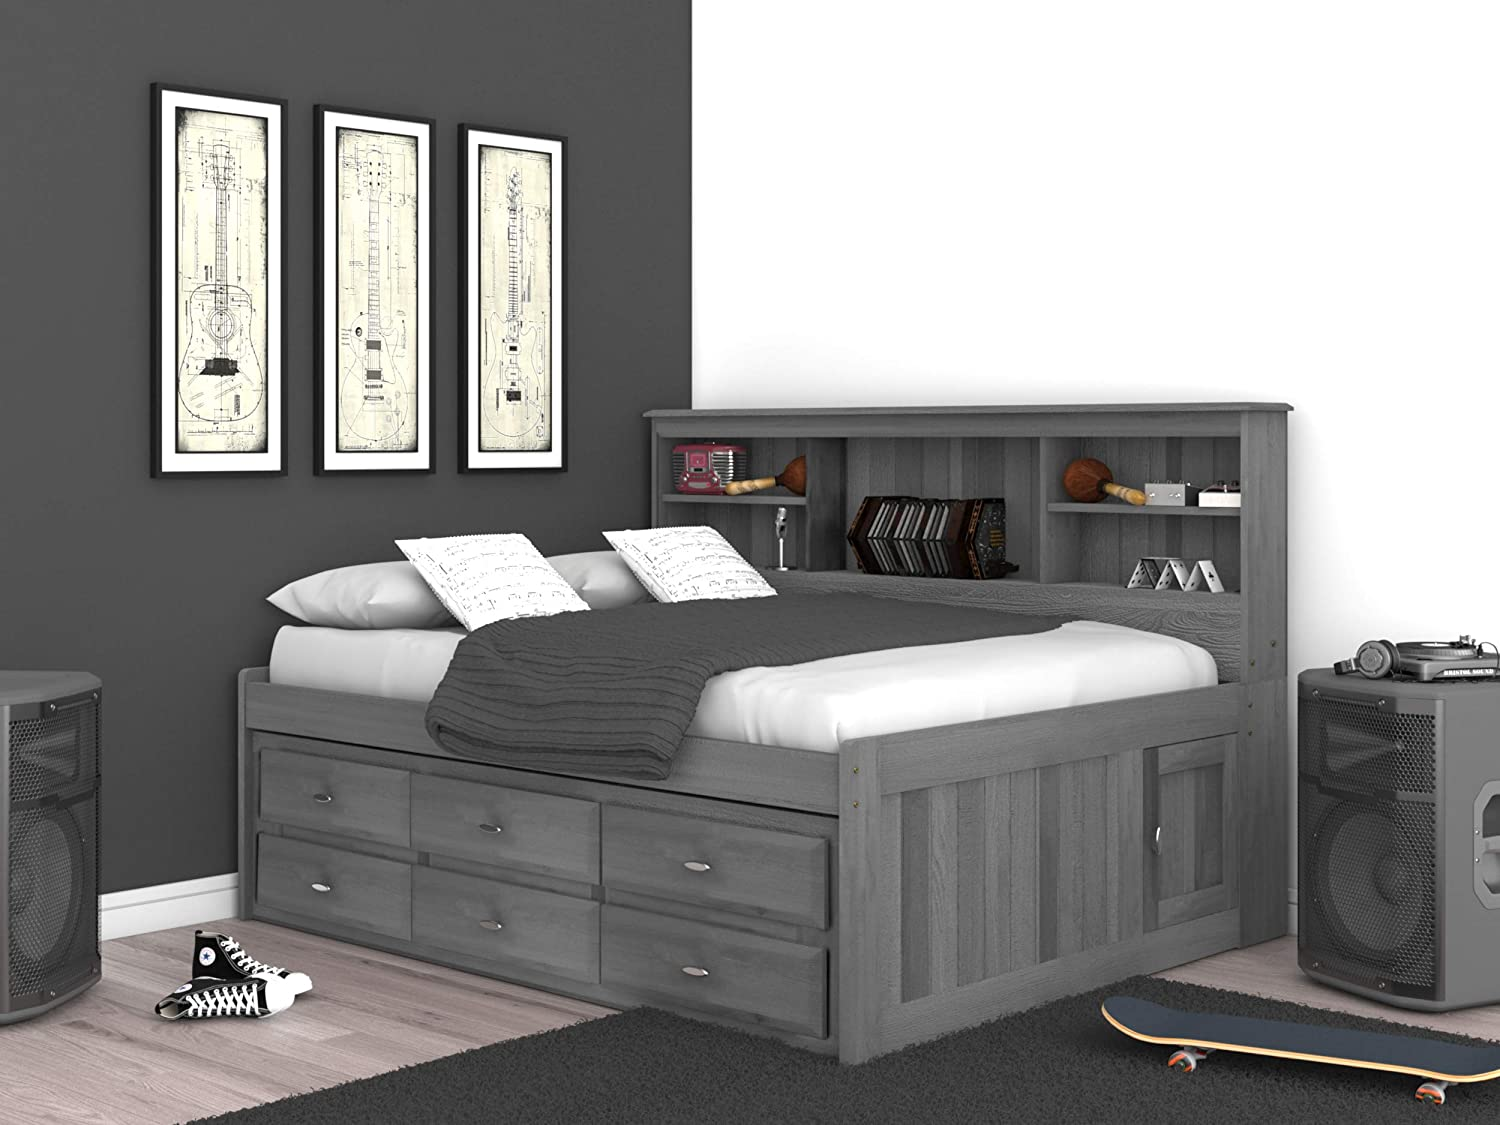 Discovery World Furniture Full Daybed with 6 Drawers